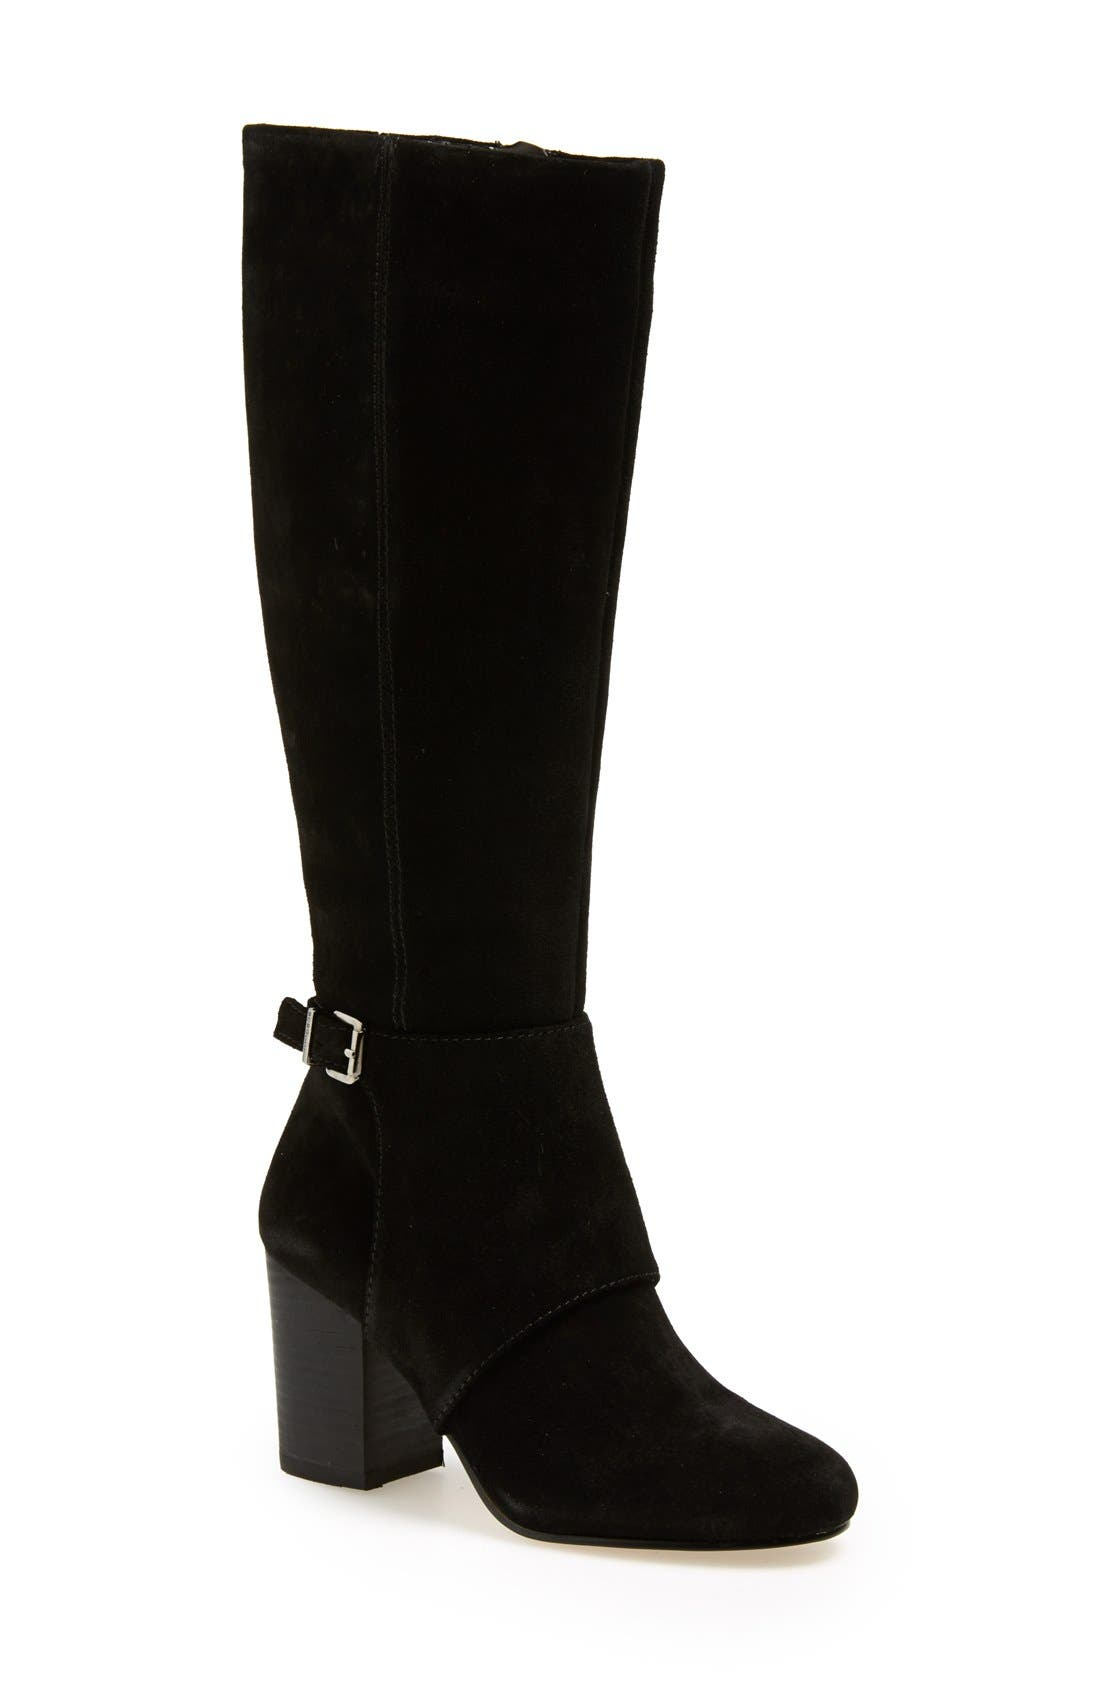 Main Image - BCBGeneration 'Denver' Knee High Boot (Women)